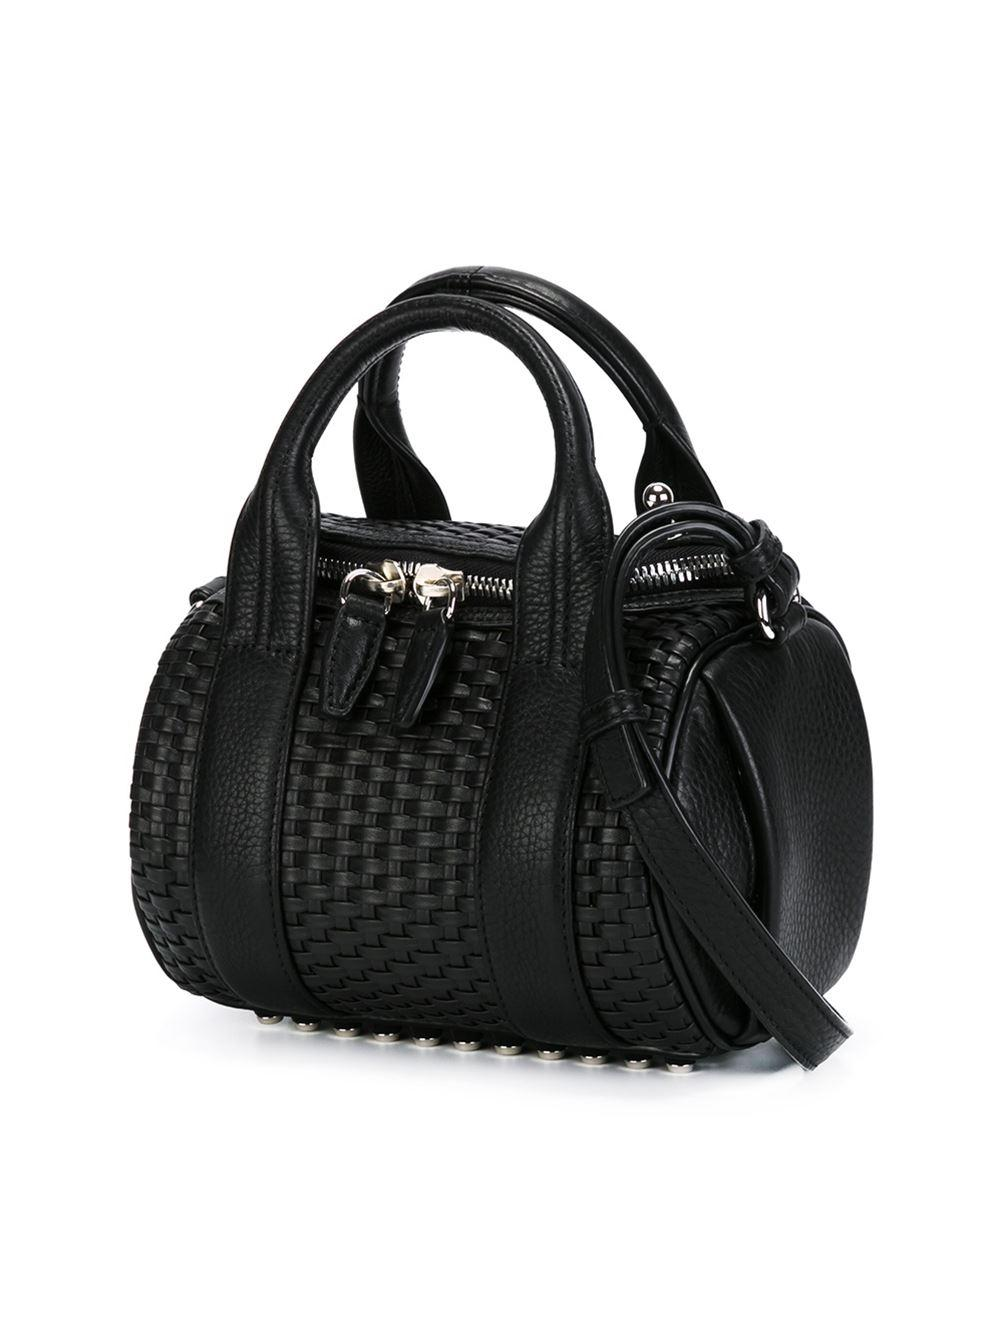 ALEXANDER WANG  mini 'Rockie' tote On Sale @ Farfetch